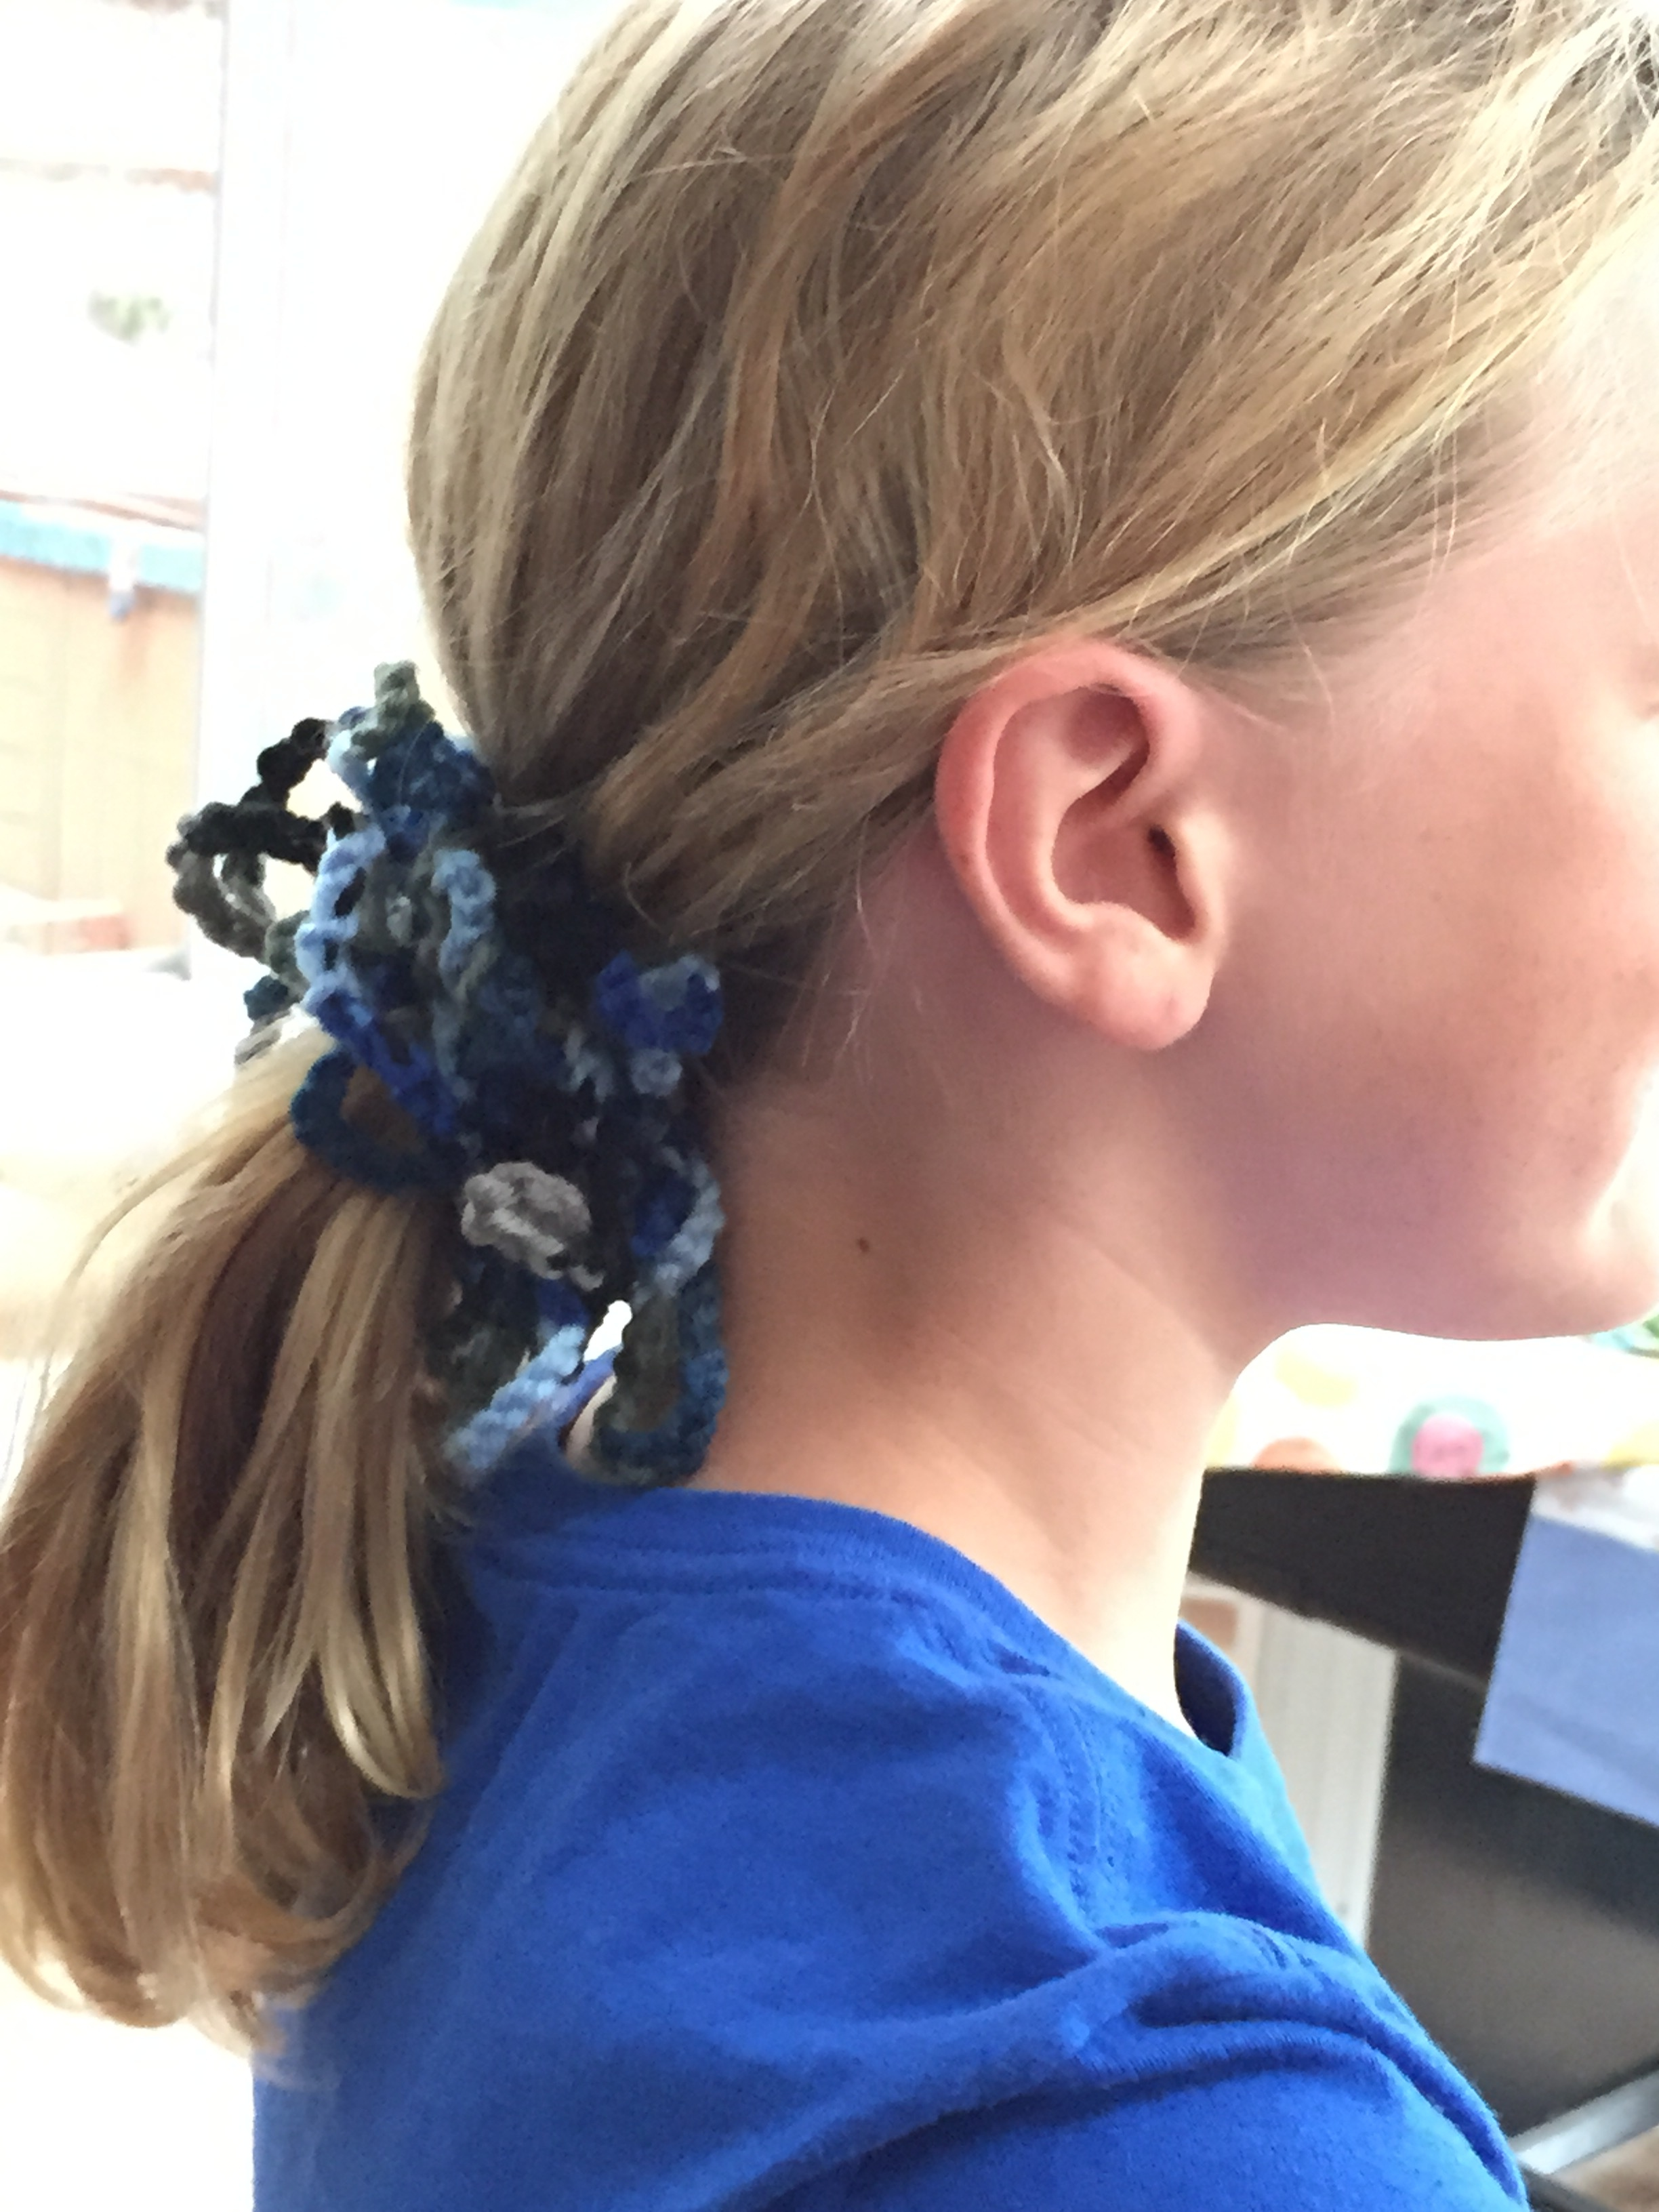 5th grader crochet scrunchie.